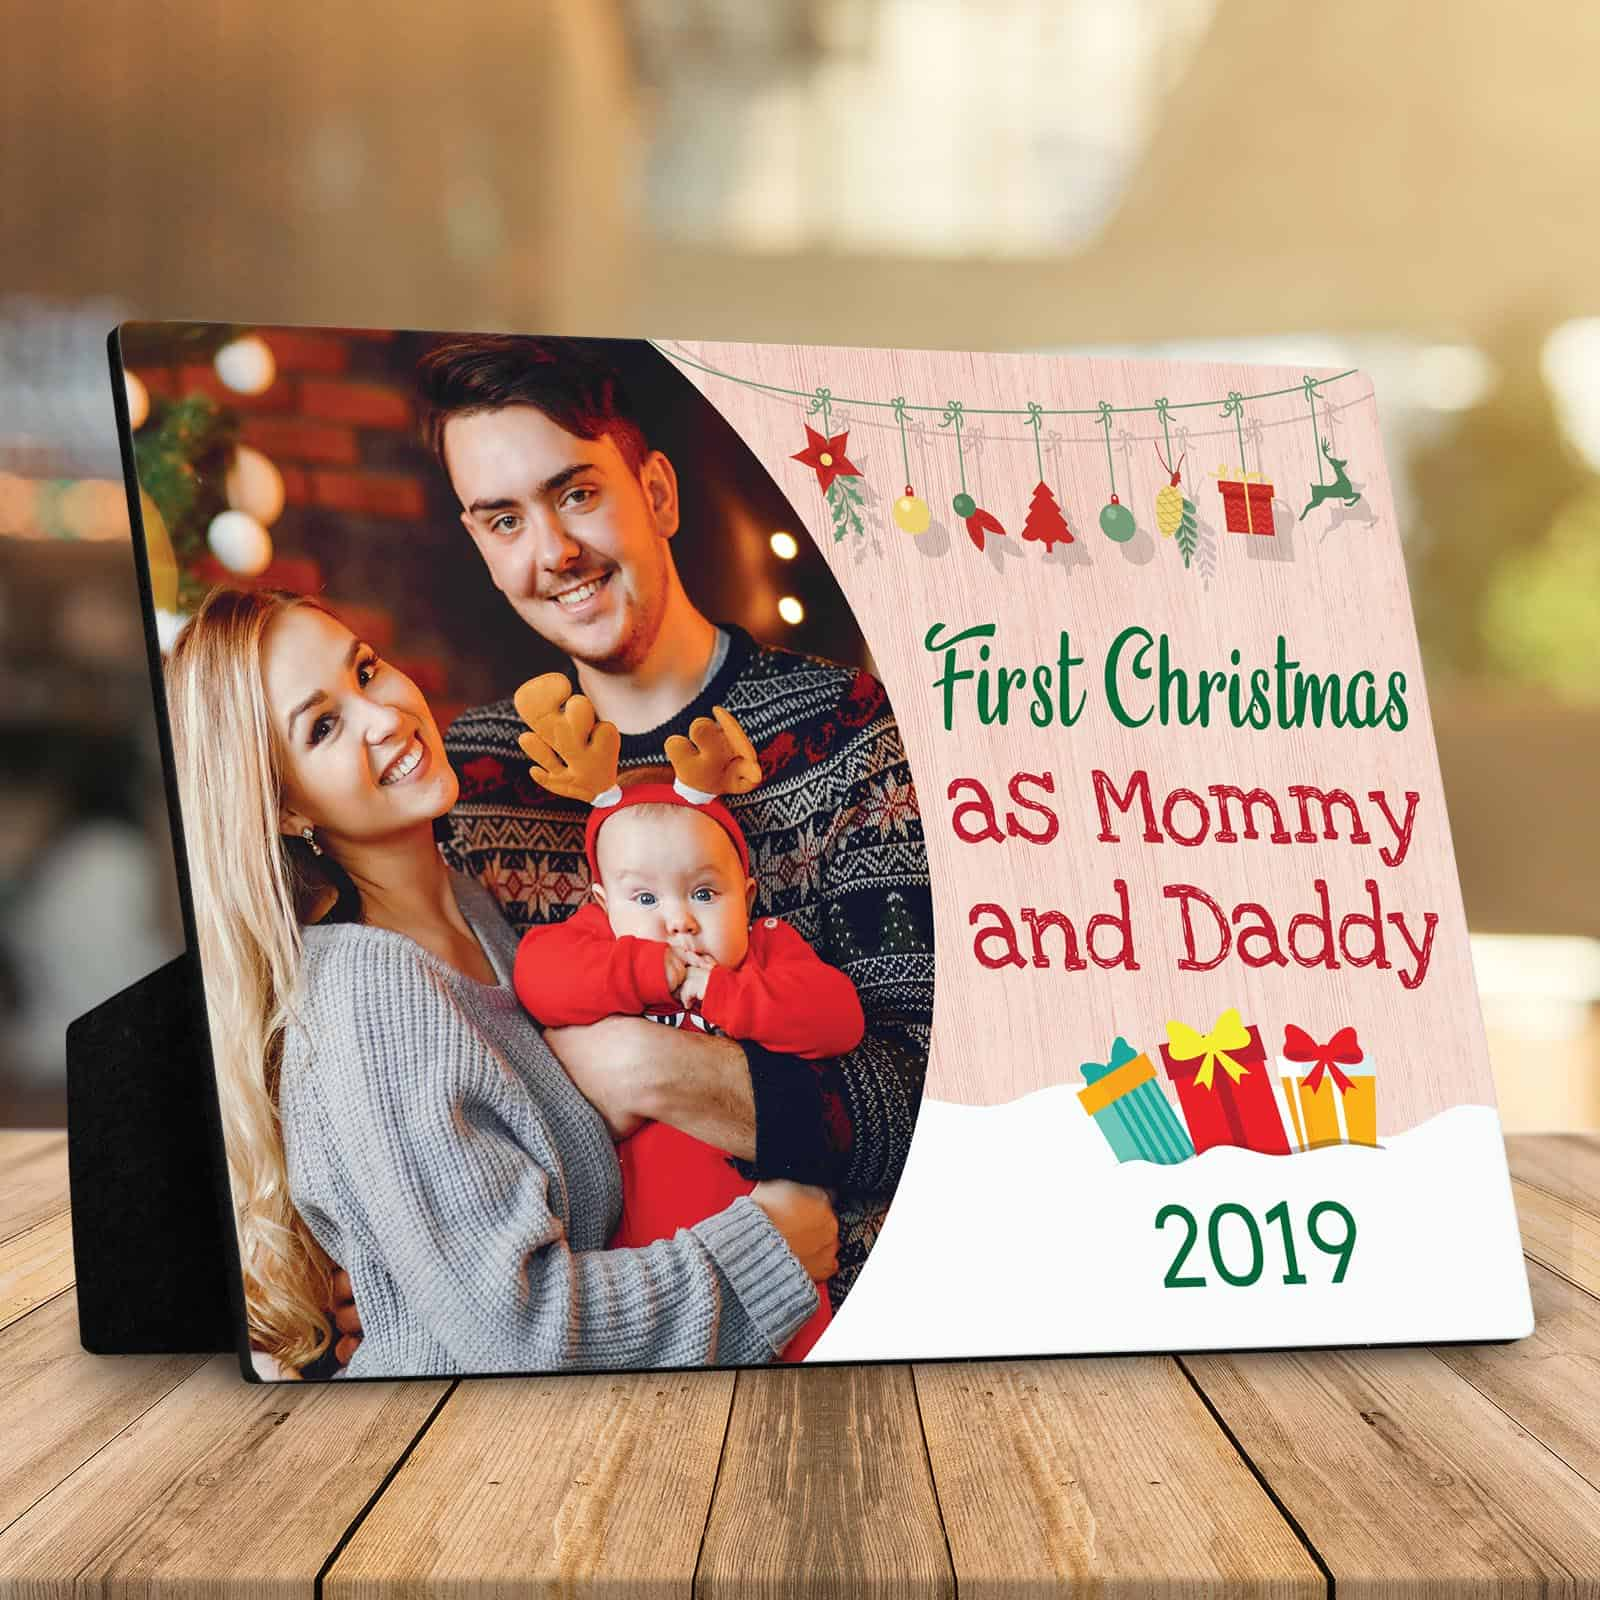 first christmas as mommy and daddy desktop plaque - First Christmas as Mommy and Daddy Photo Desktop Plaque